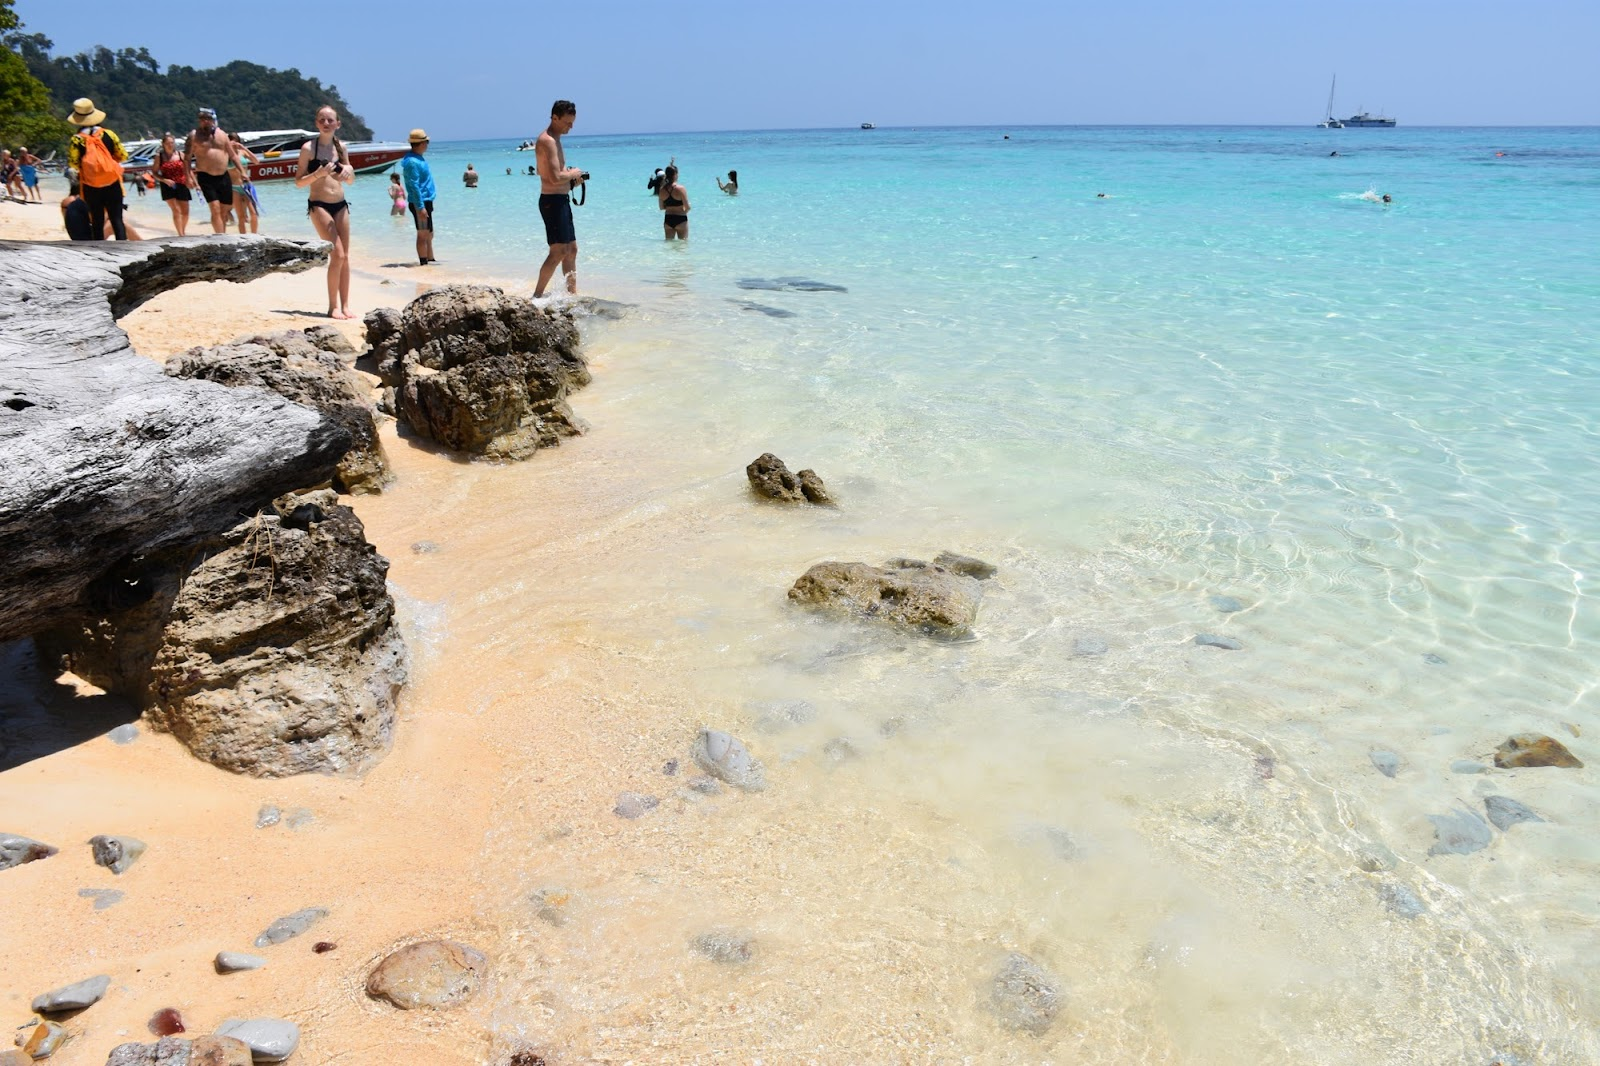 Snorkel Tour to Koh Rok and Koh Ha by Siam Adventure World from Khao Lak